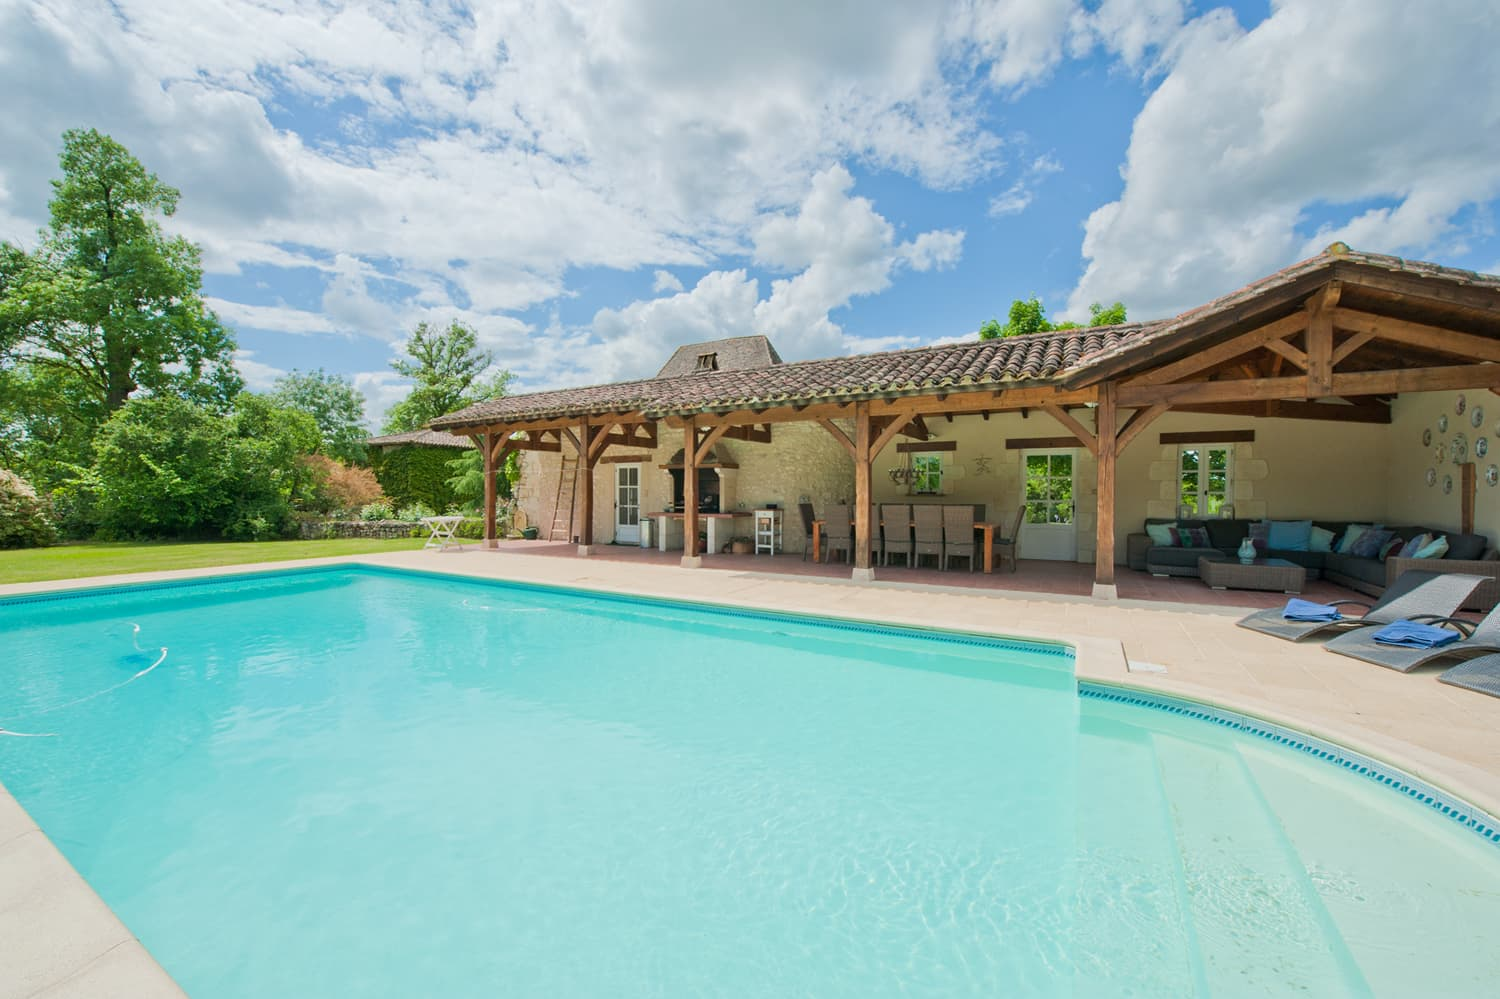 Private, heated pool with covered terrace